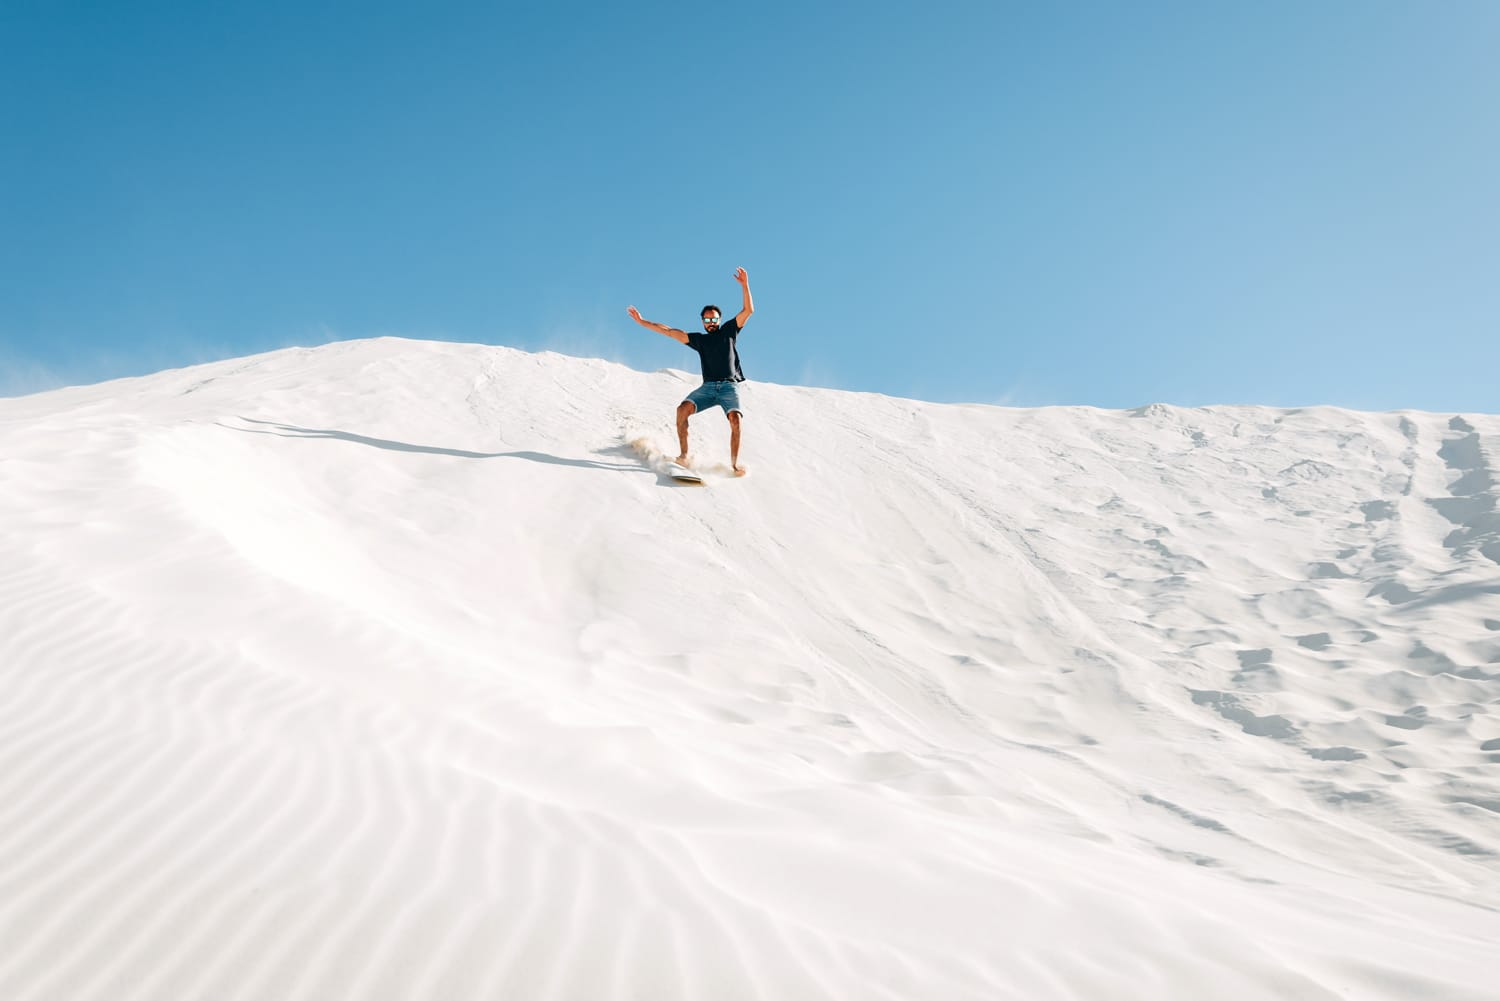 Sand boarding at the Lancelin sand dunes near Perth, Western Australia